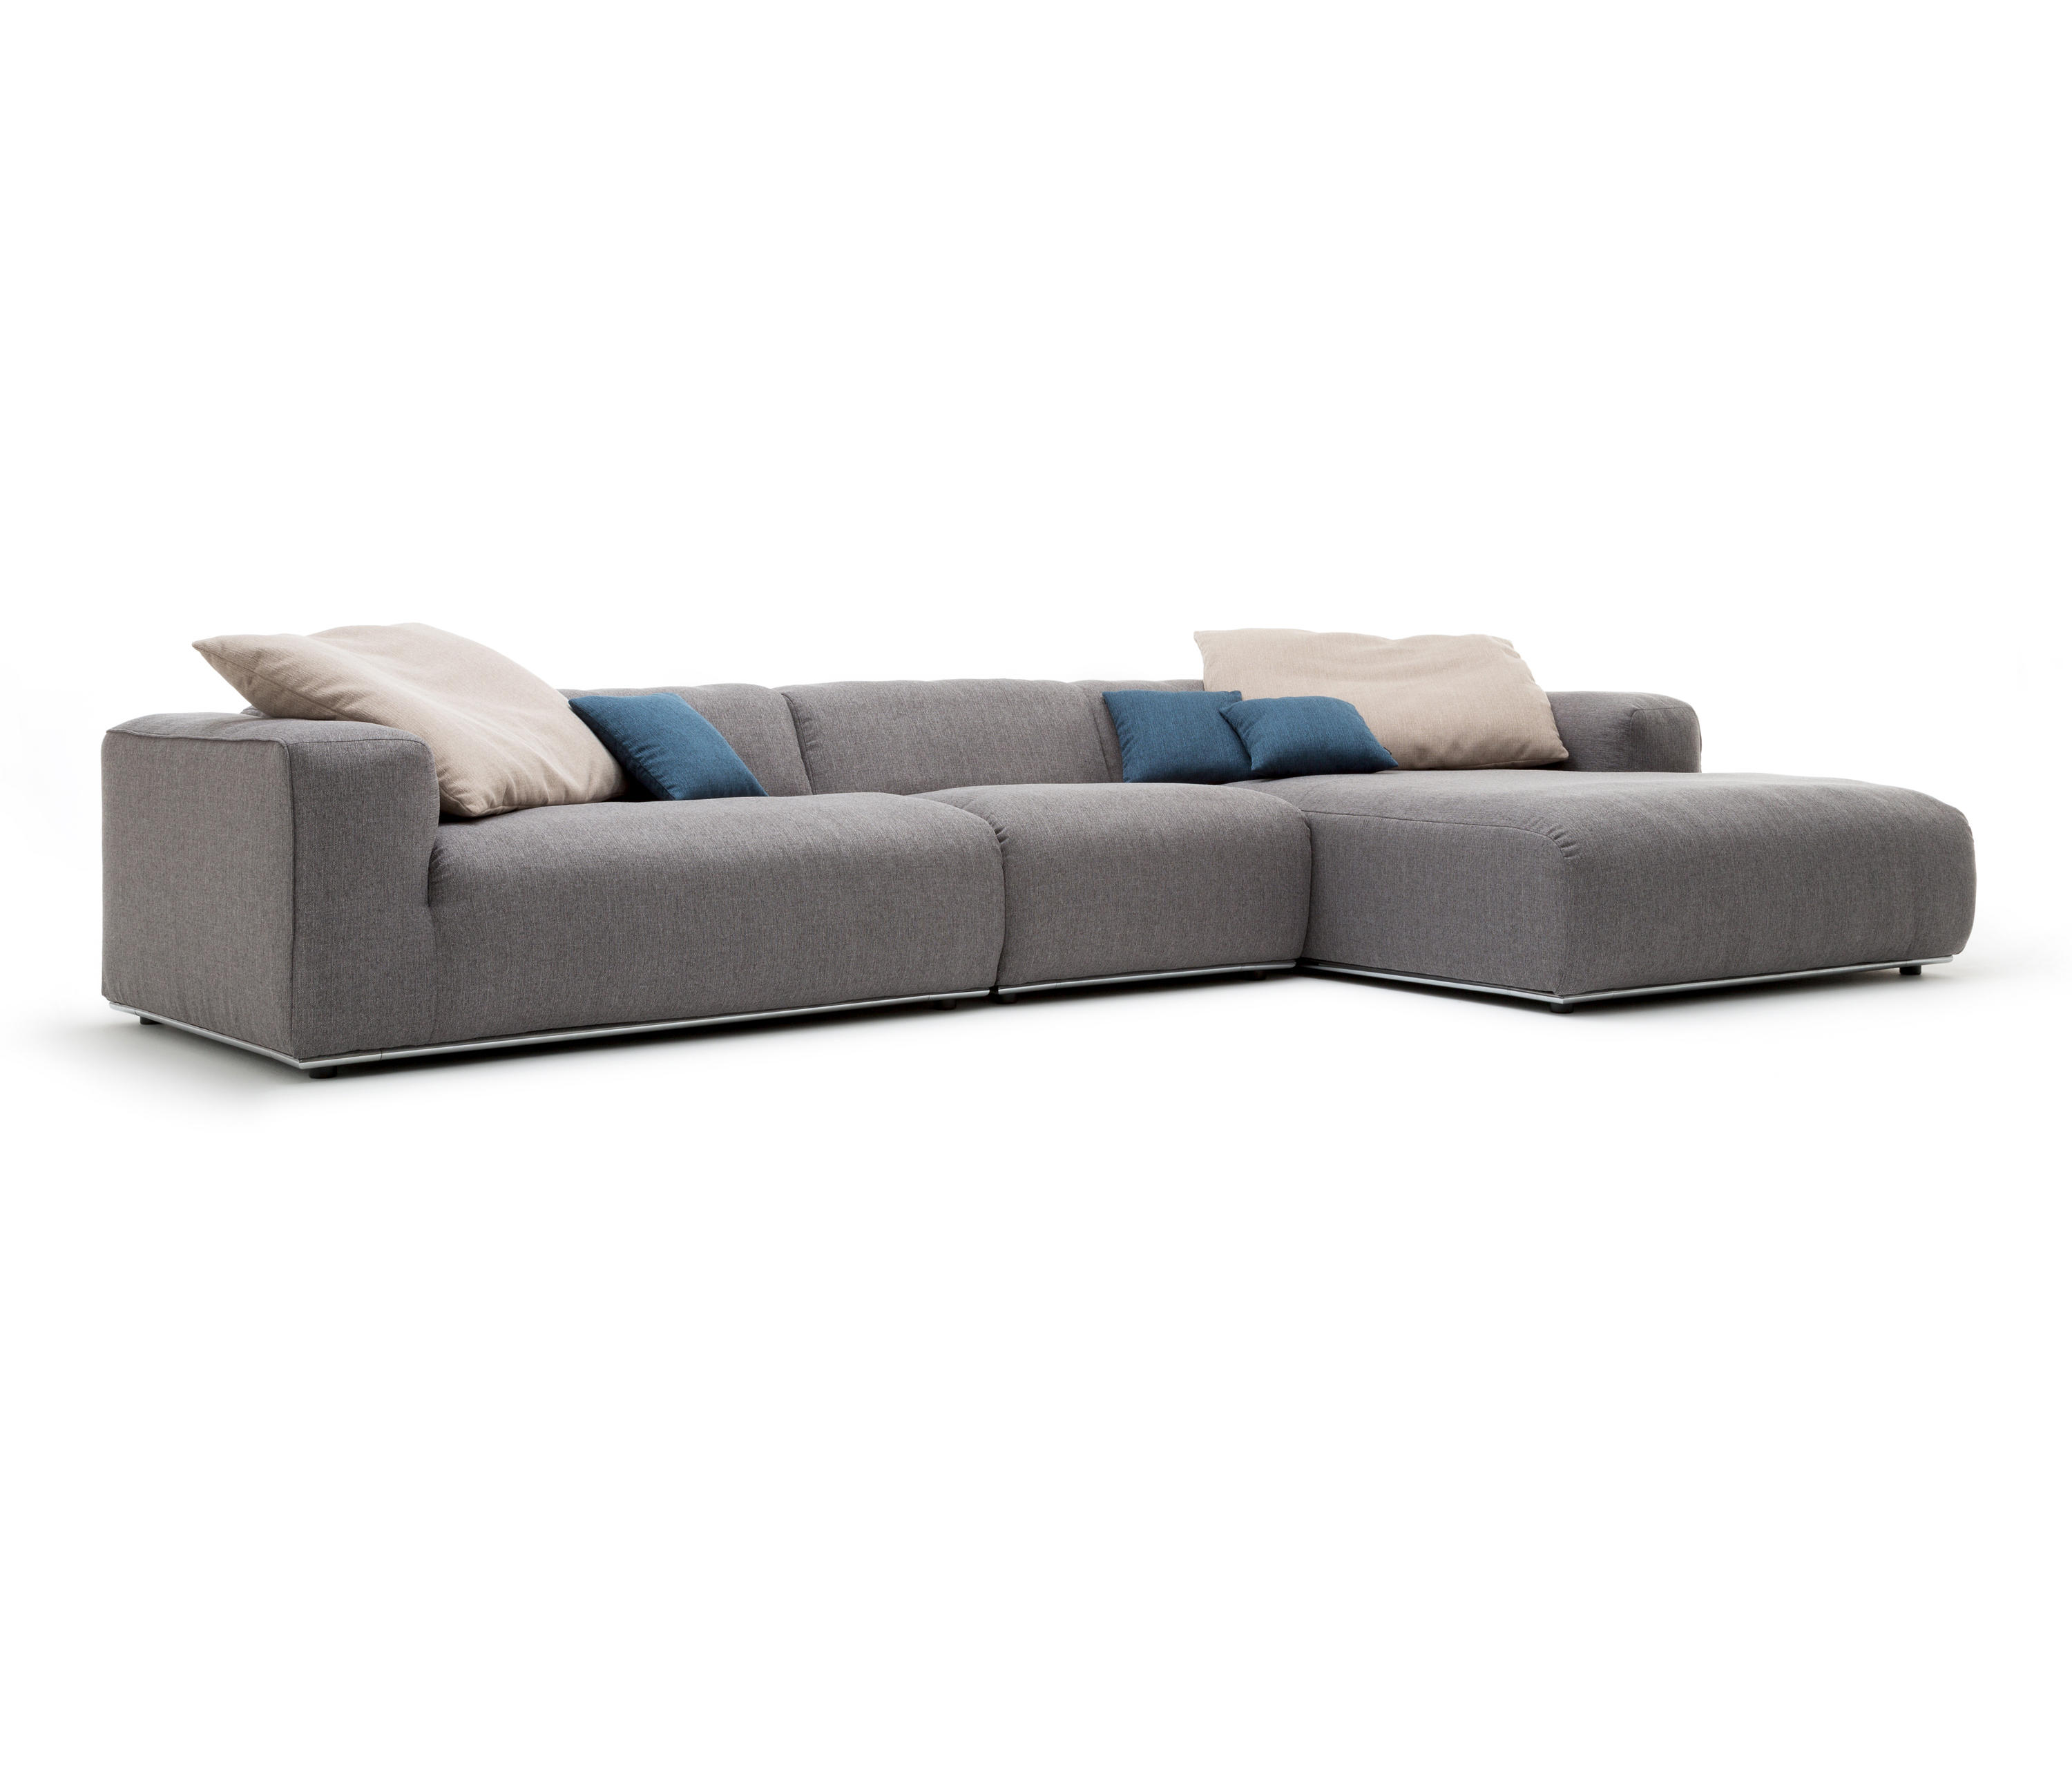 Freistil Sofa Freistil 187 - Sofas From Freistil | Architonic